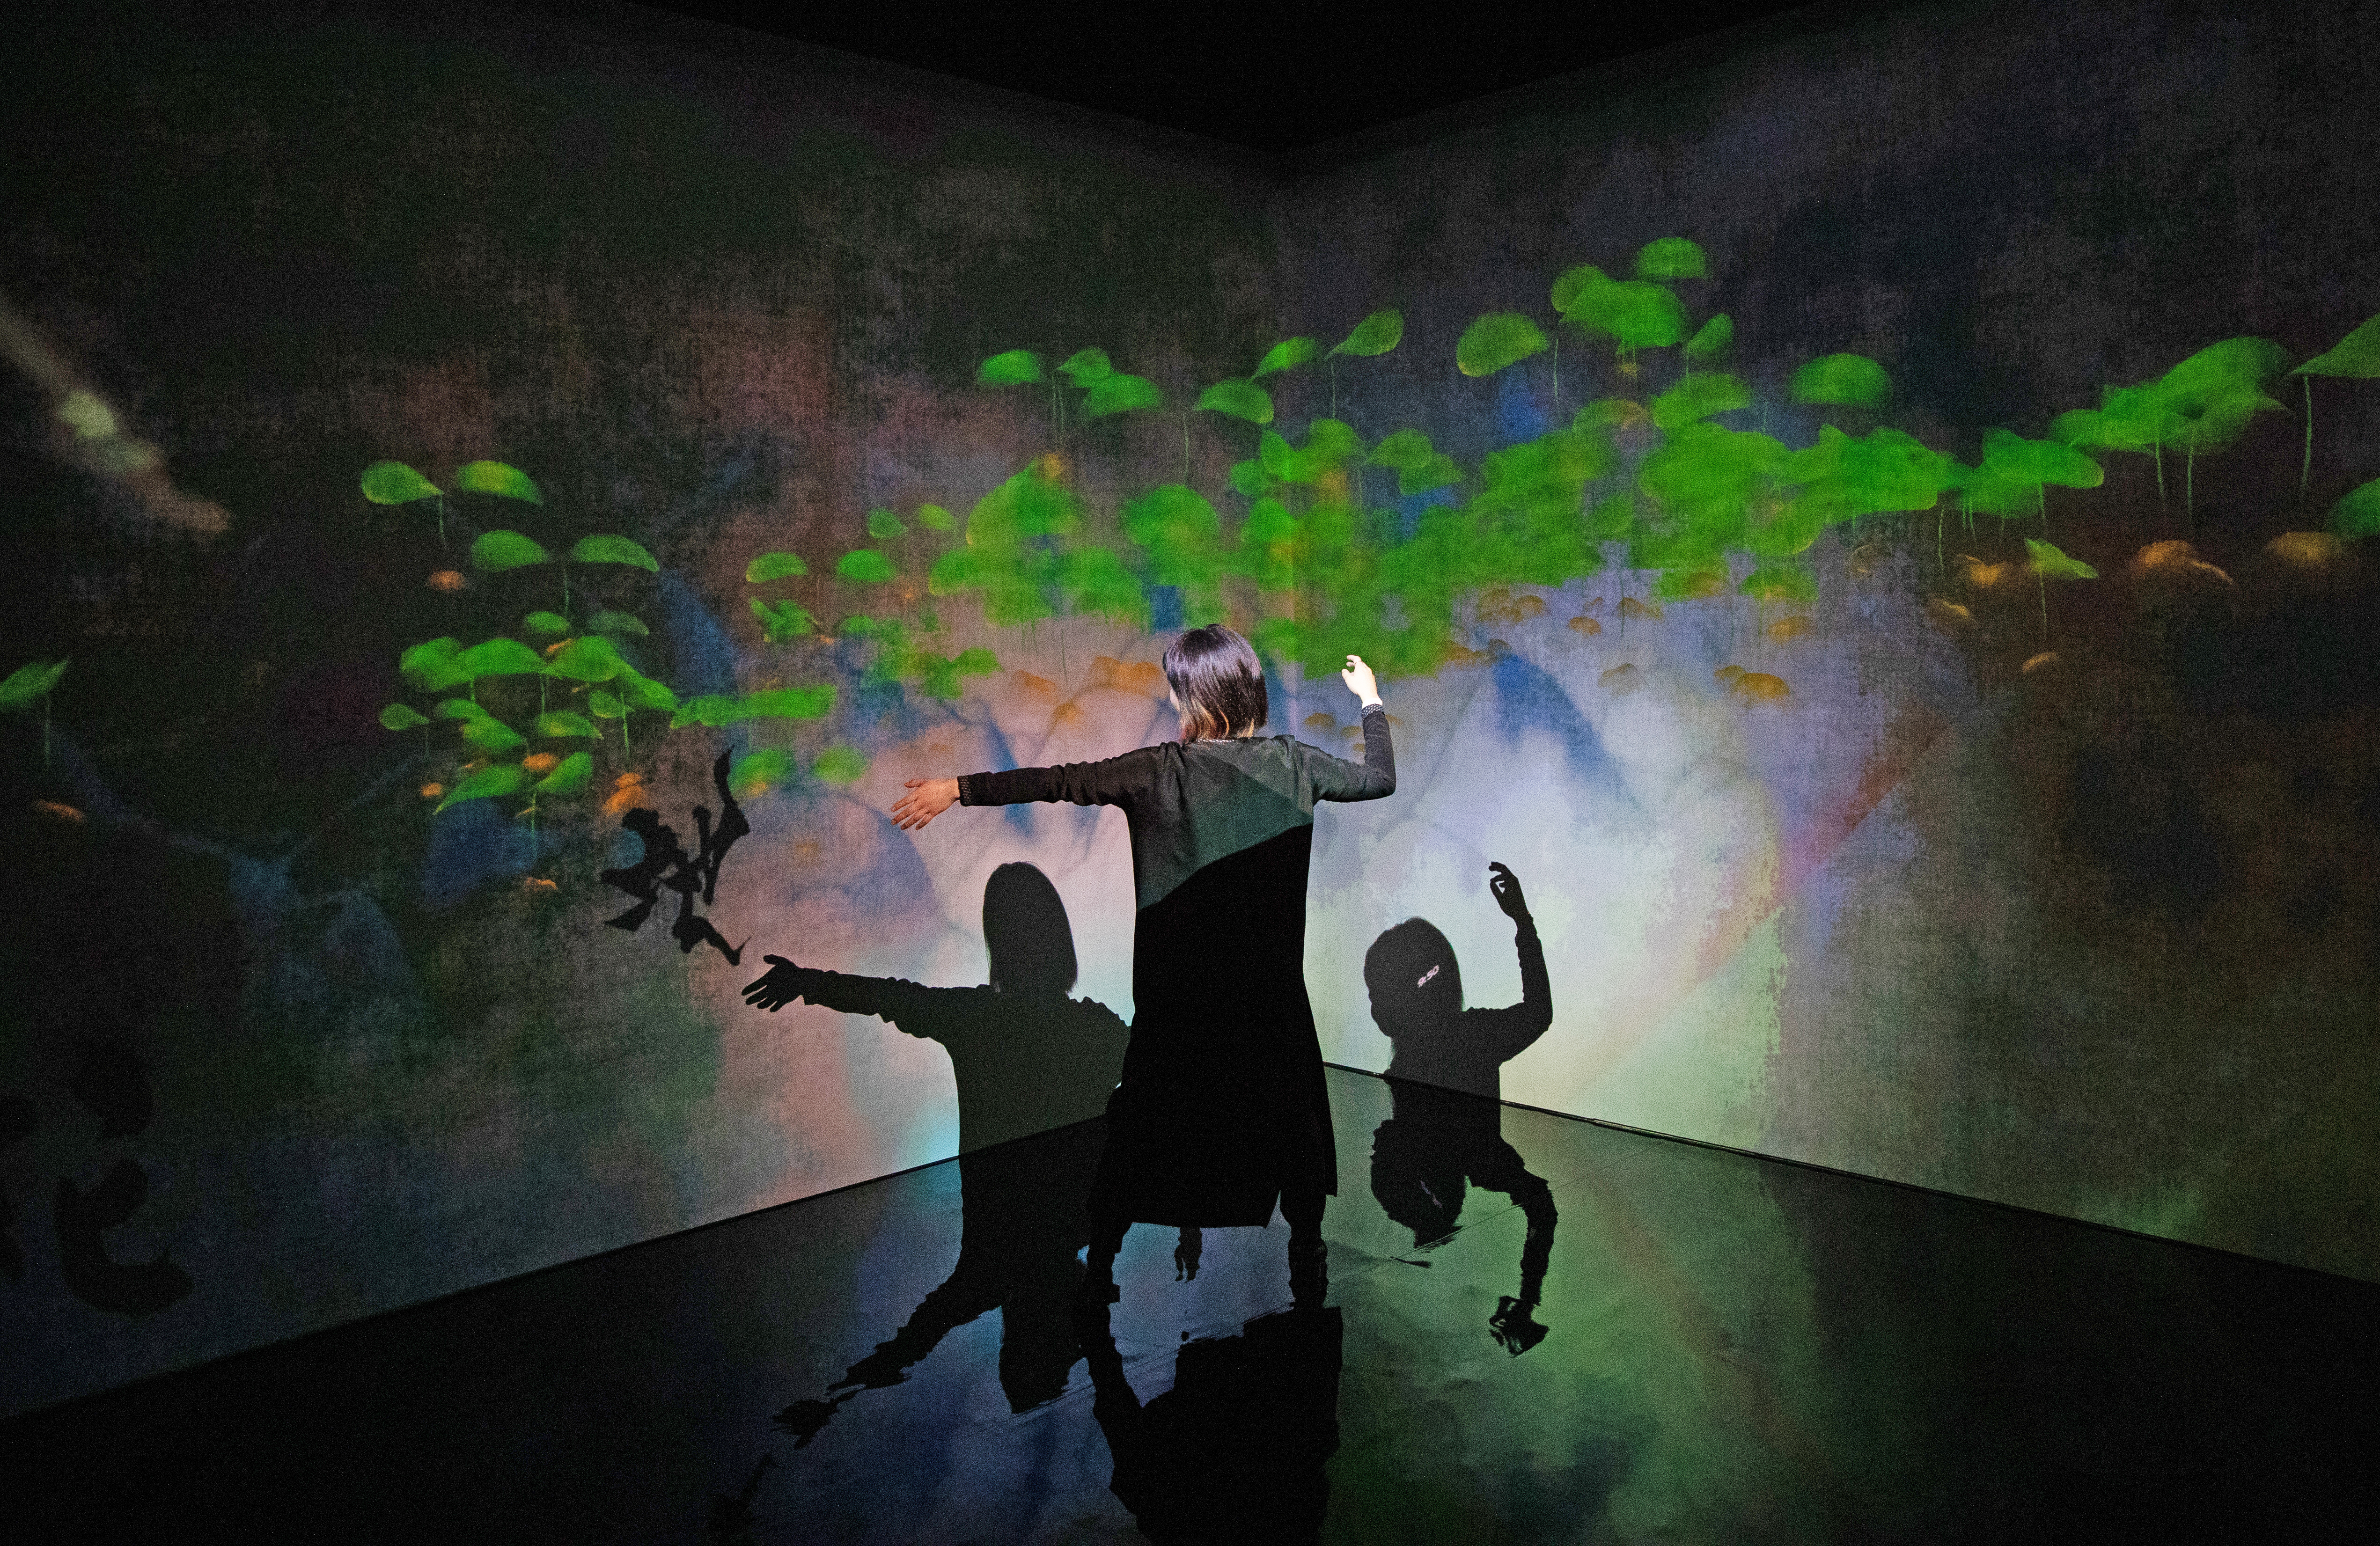 A woman interacts with a digital art installation exploring the relationship between humans and artificial intelligence.